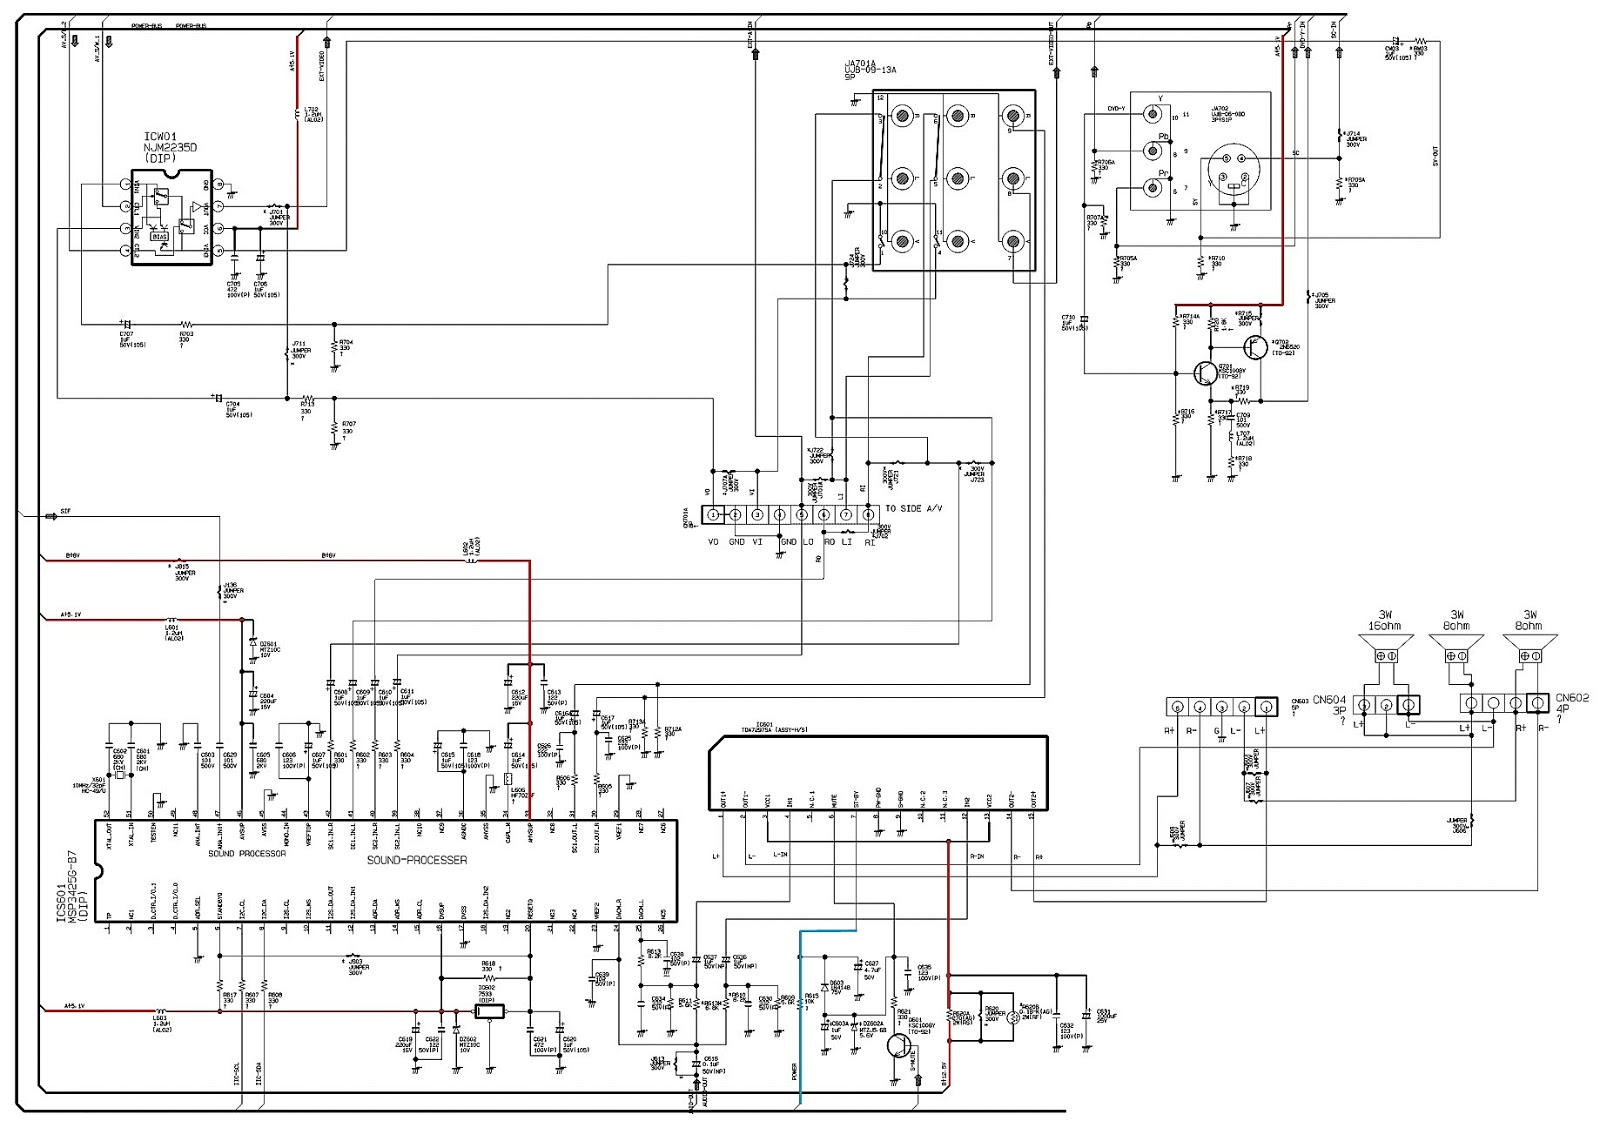 hight resolution of wiring diagram for receiver to samsung tv schematic diagram wiring diagram for receiver to samsung tv